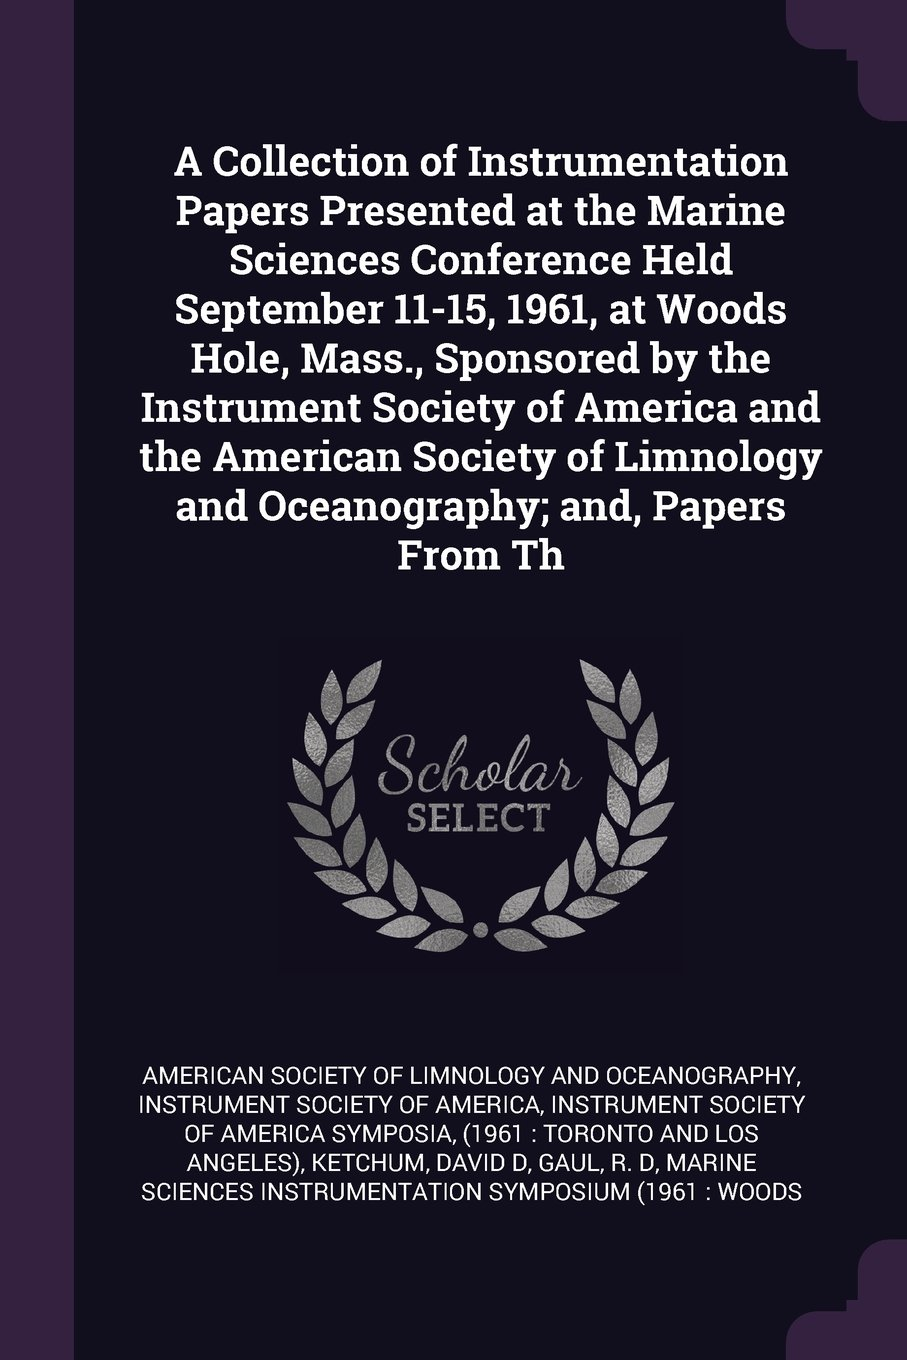 A Collection of Instrumentation Papers Presented at the Marine Sciences Conference Held September 11-15, 1961, at Woods Hole, Mass., Sponsored by the ... and Oceanography; And, Papers from Th pdf epub